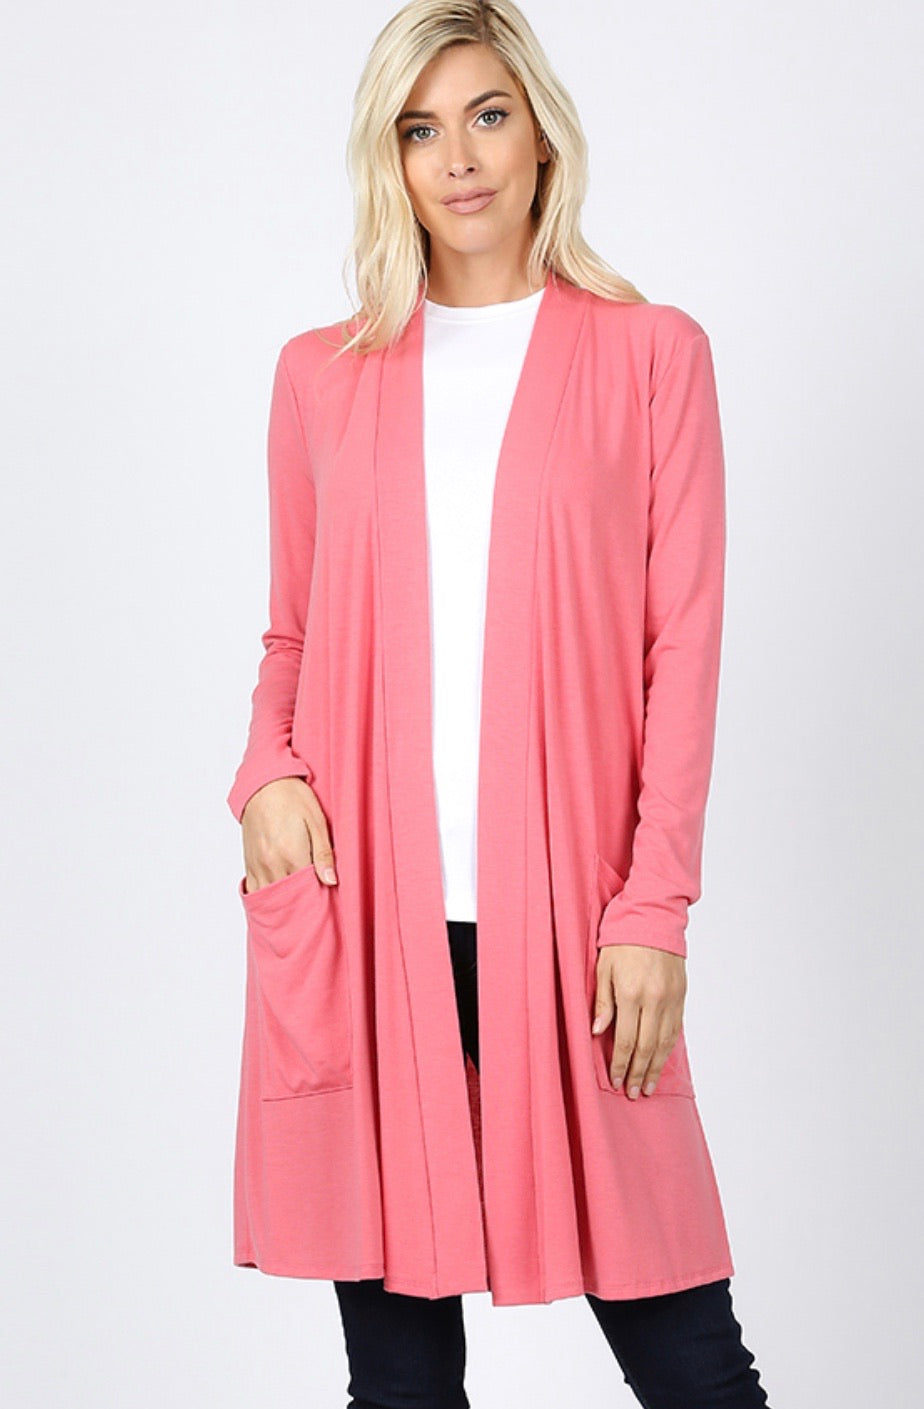 1350 - All the Stretch Basic Cardigan